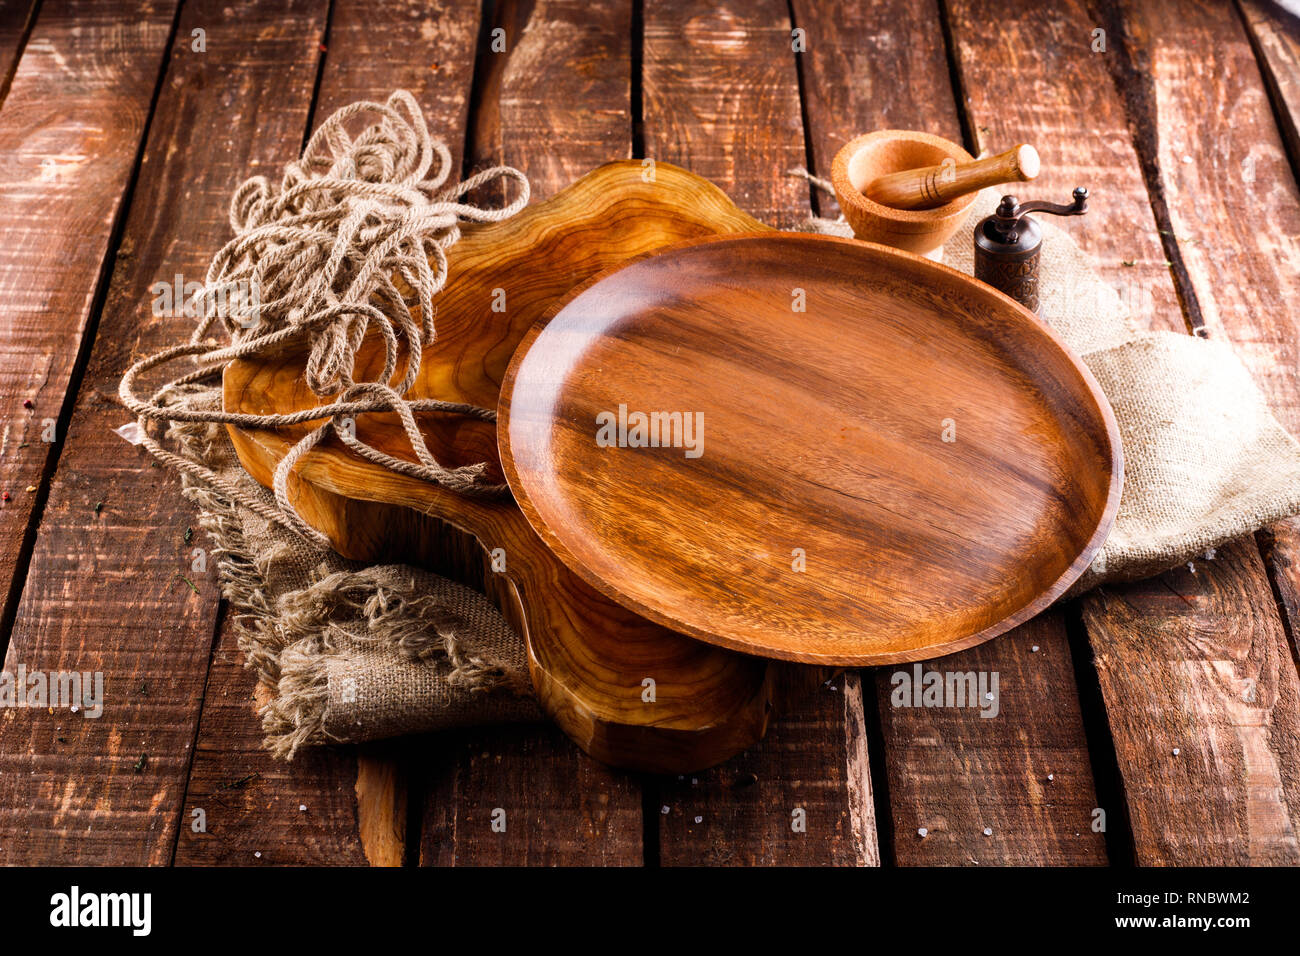 The Brown Wooden Plate On A Rustic Table Closeup Horizontal Top View Stock Photo Alamy